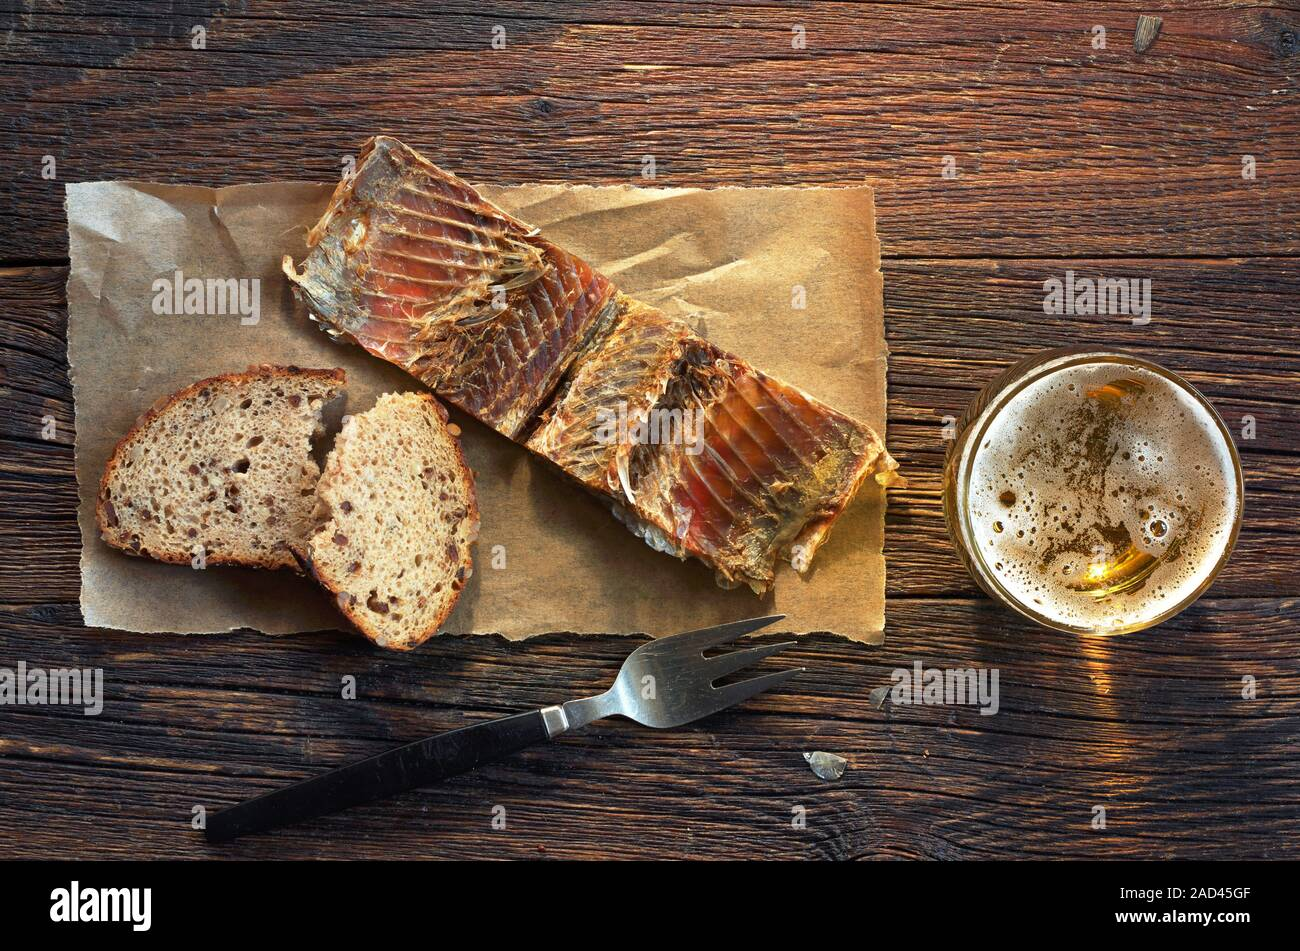 Fish on a paper, bread and glass of beer on old wooden table, top view Stock Photo